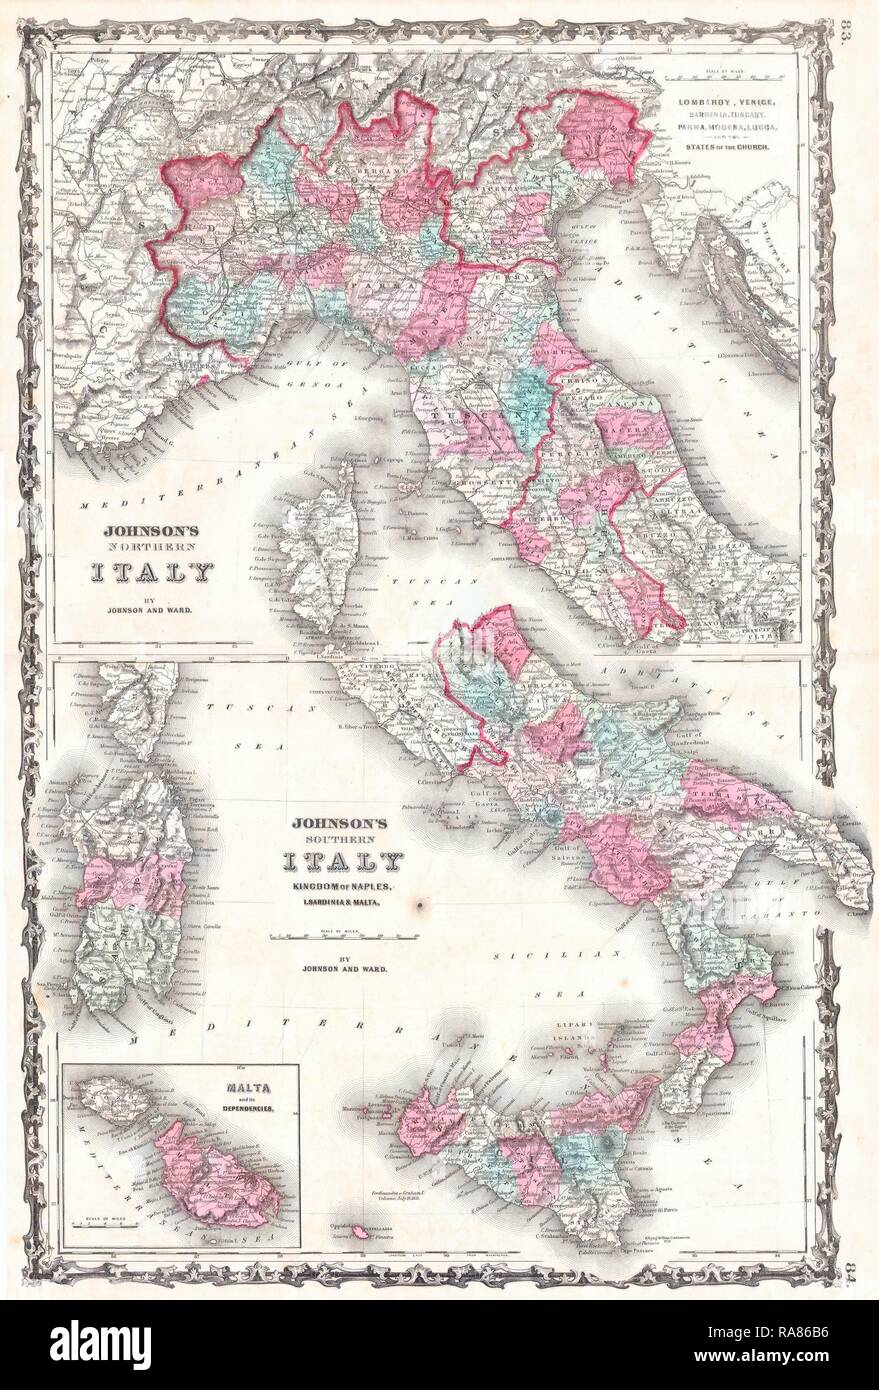 Modern Map Of Italy.1862 Johnson Map Of Italy Naples And Sicily Reimagined By Gibon